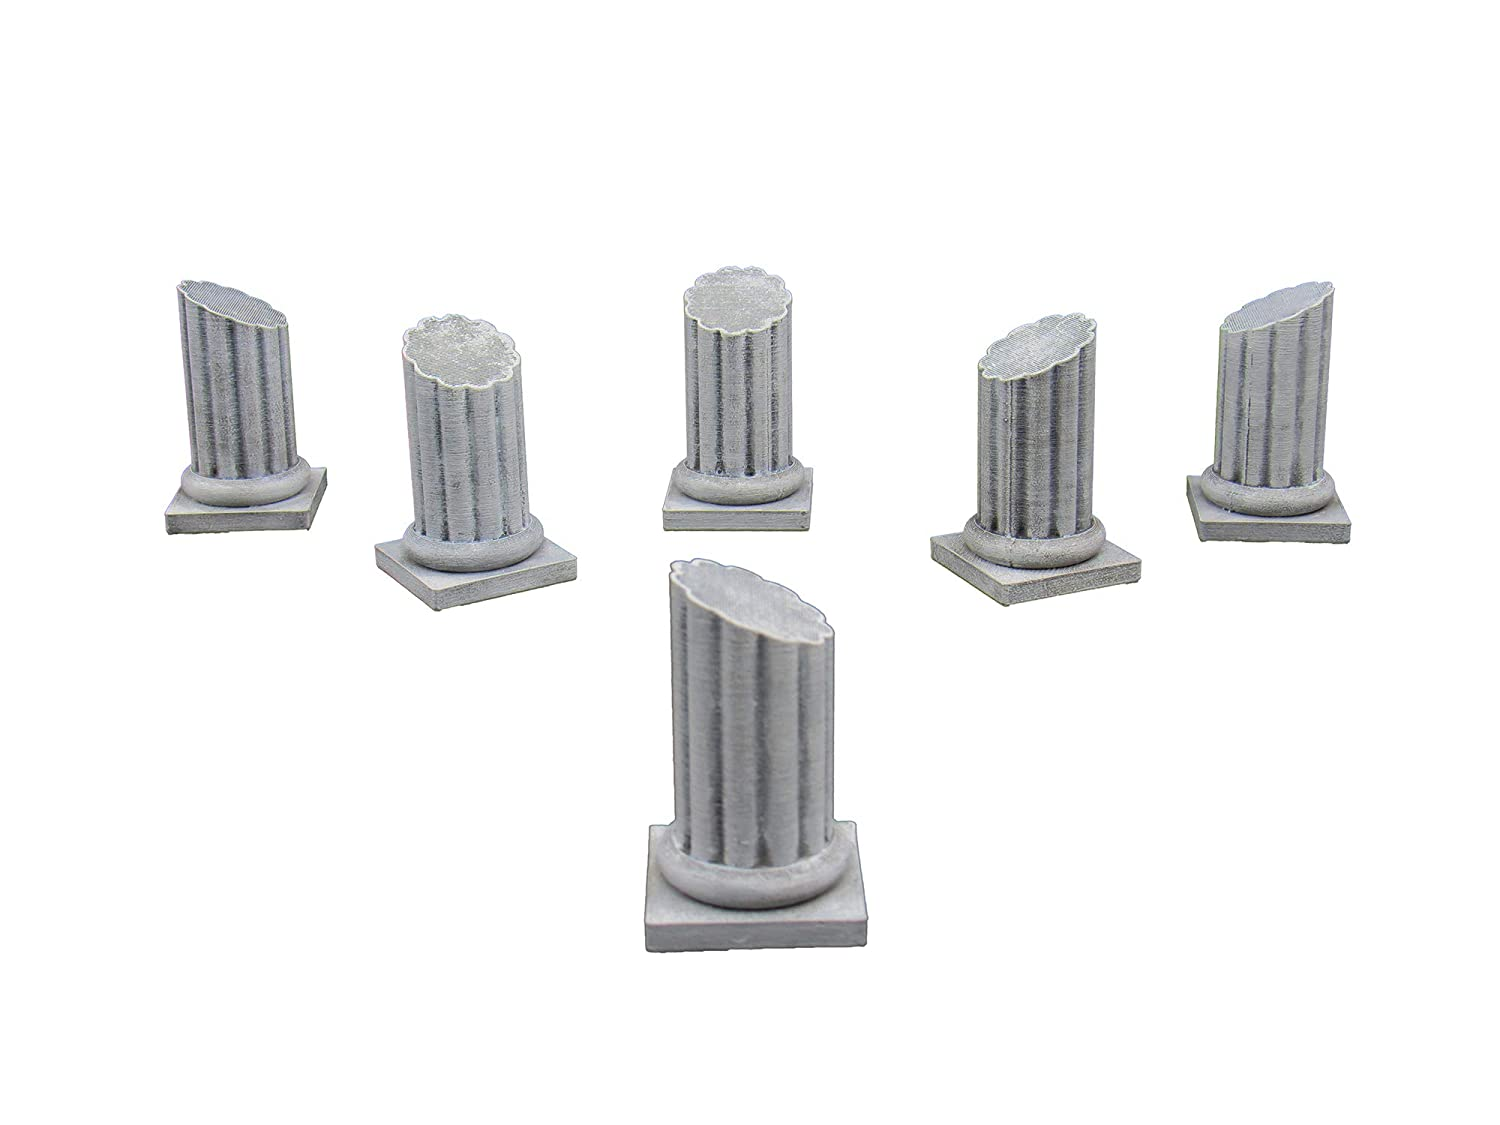 Pillars, Terrain Scenery for Tabletop 28mm Miniatures Wargame, 3D ...